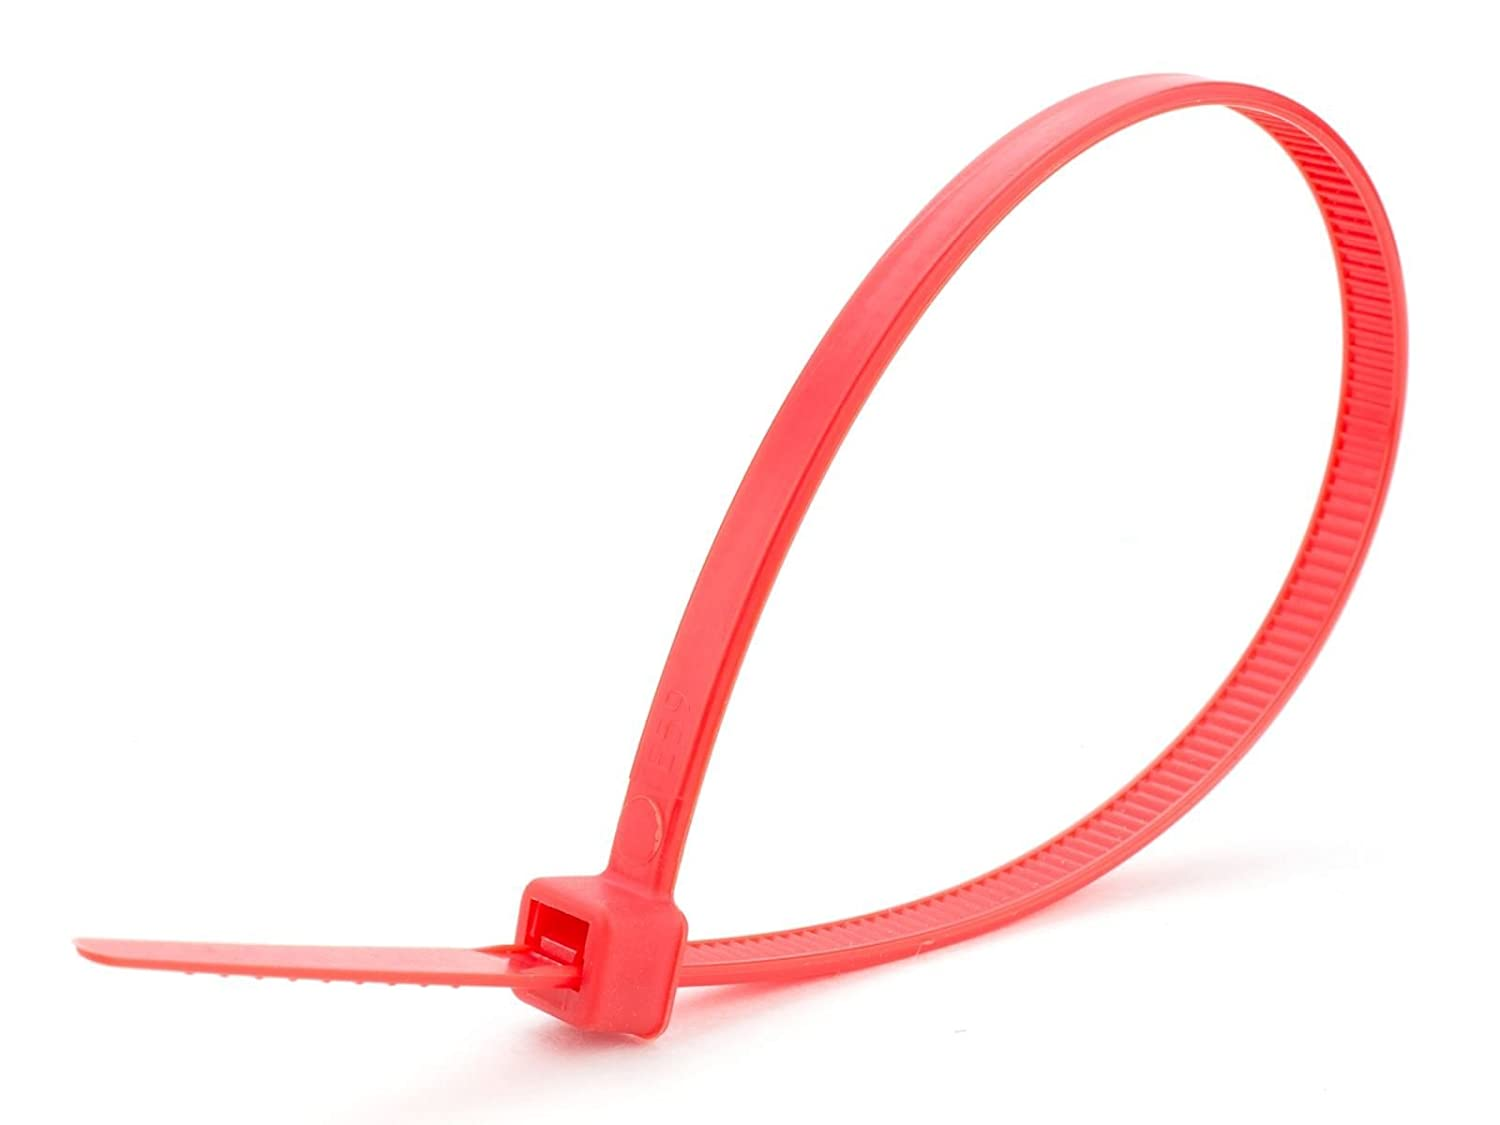 3.6mm x 140mm Red Zip Cable Tie Pack of 100